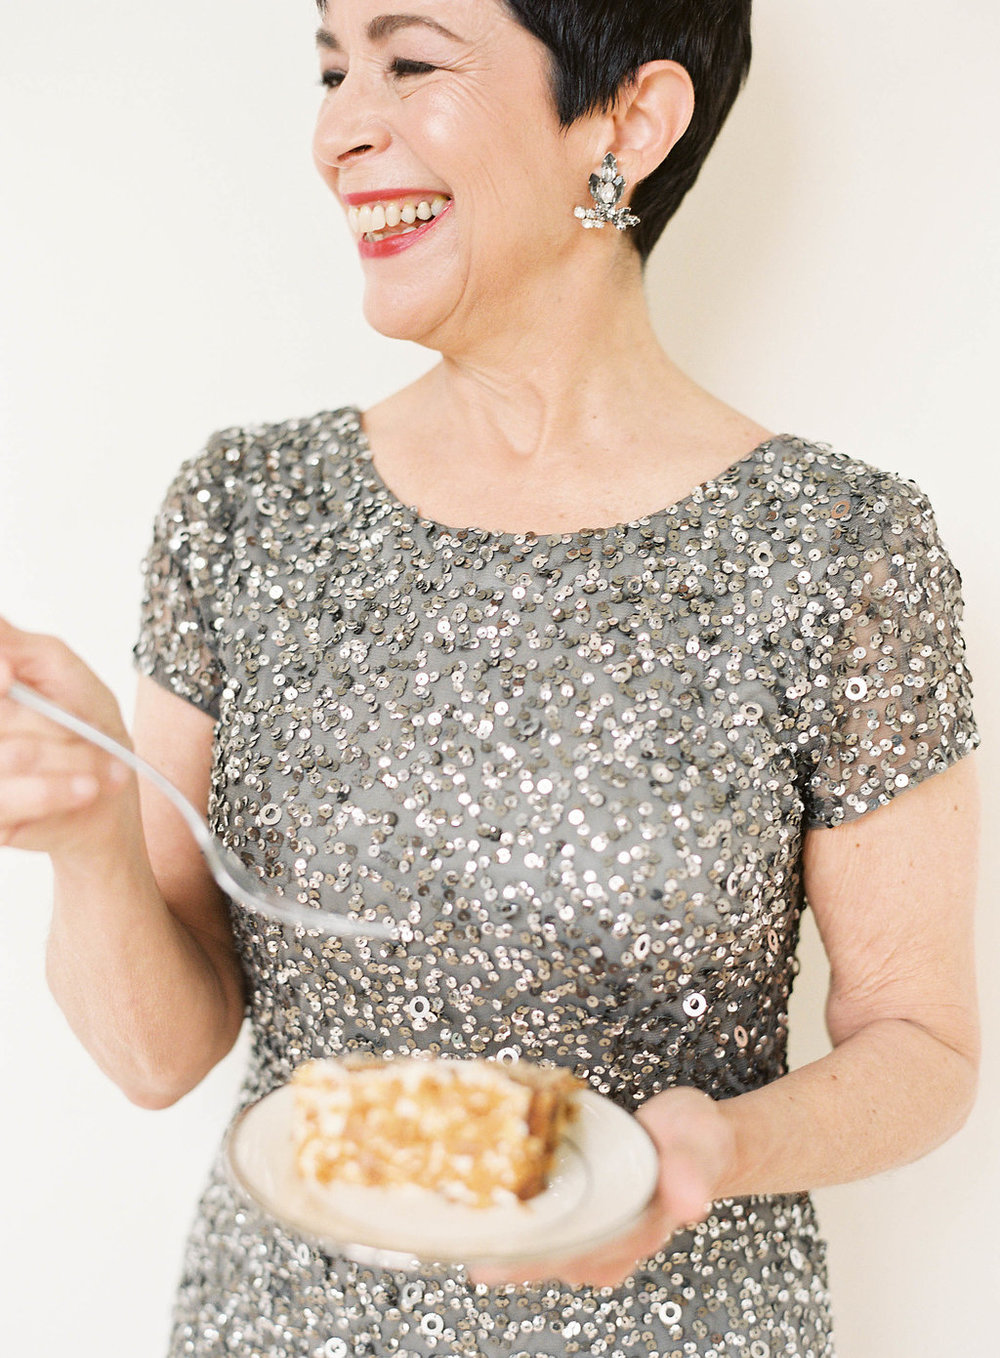 Mom eating cake in Adrianna Papell crunchy bead gown in lead silver sequin